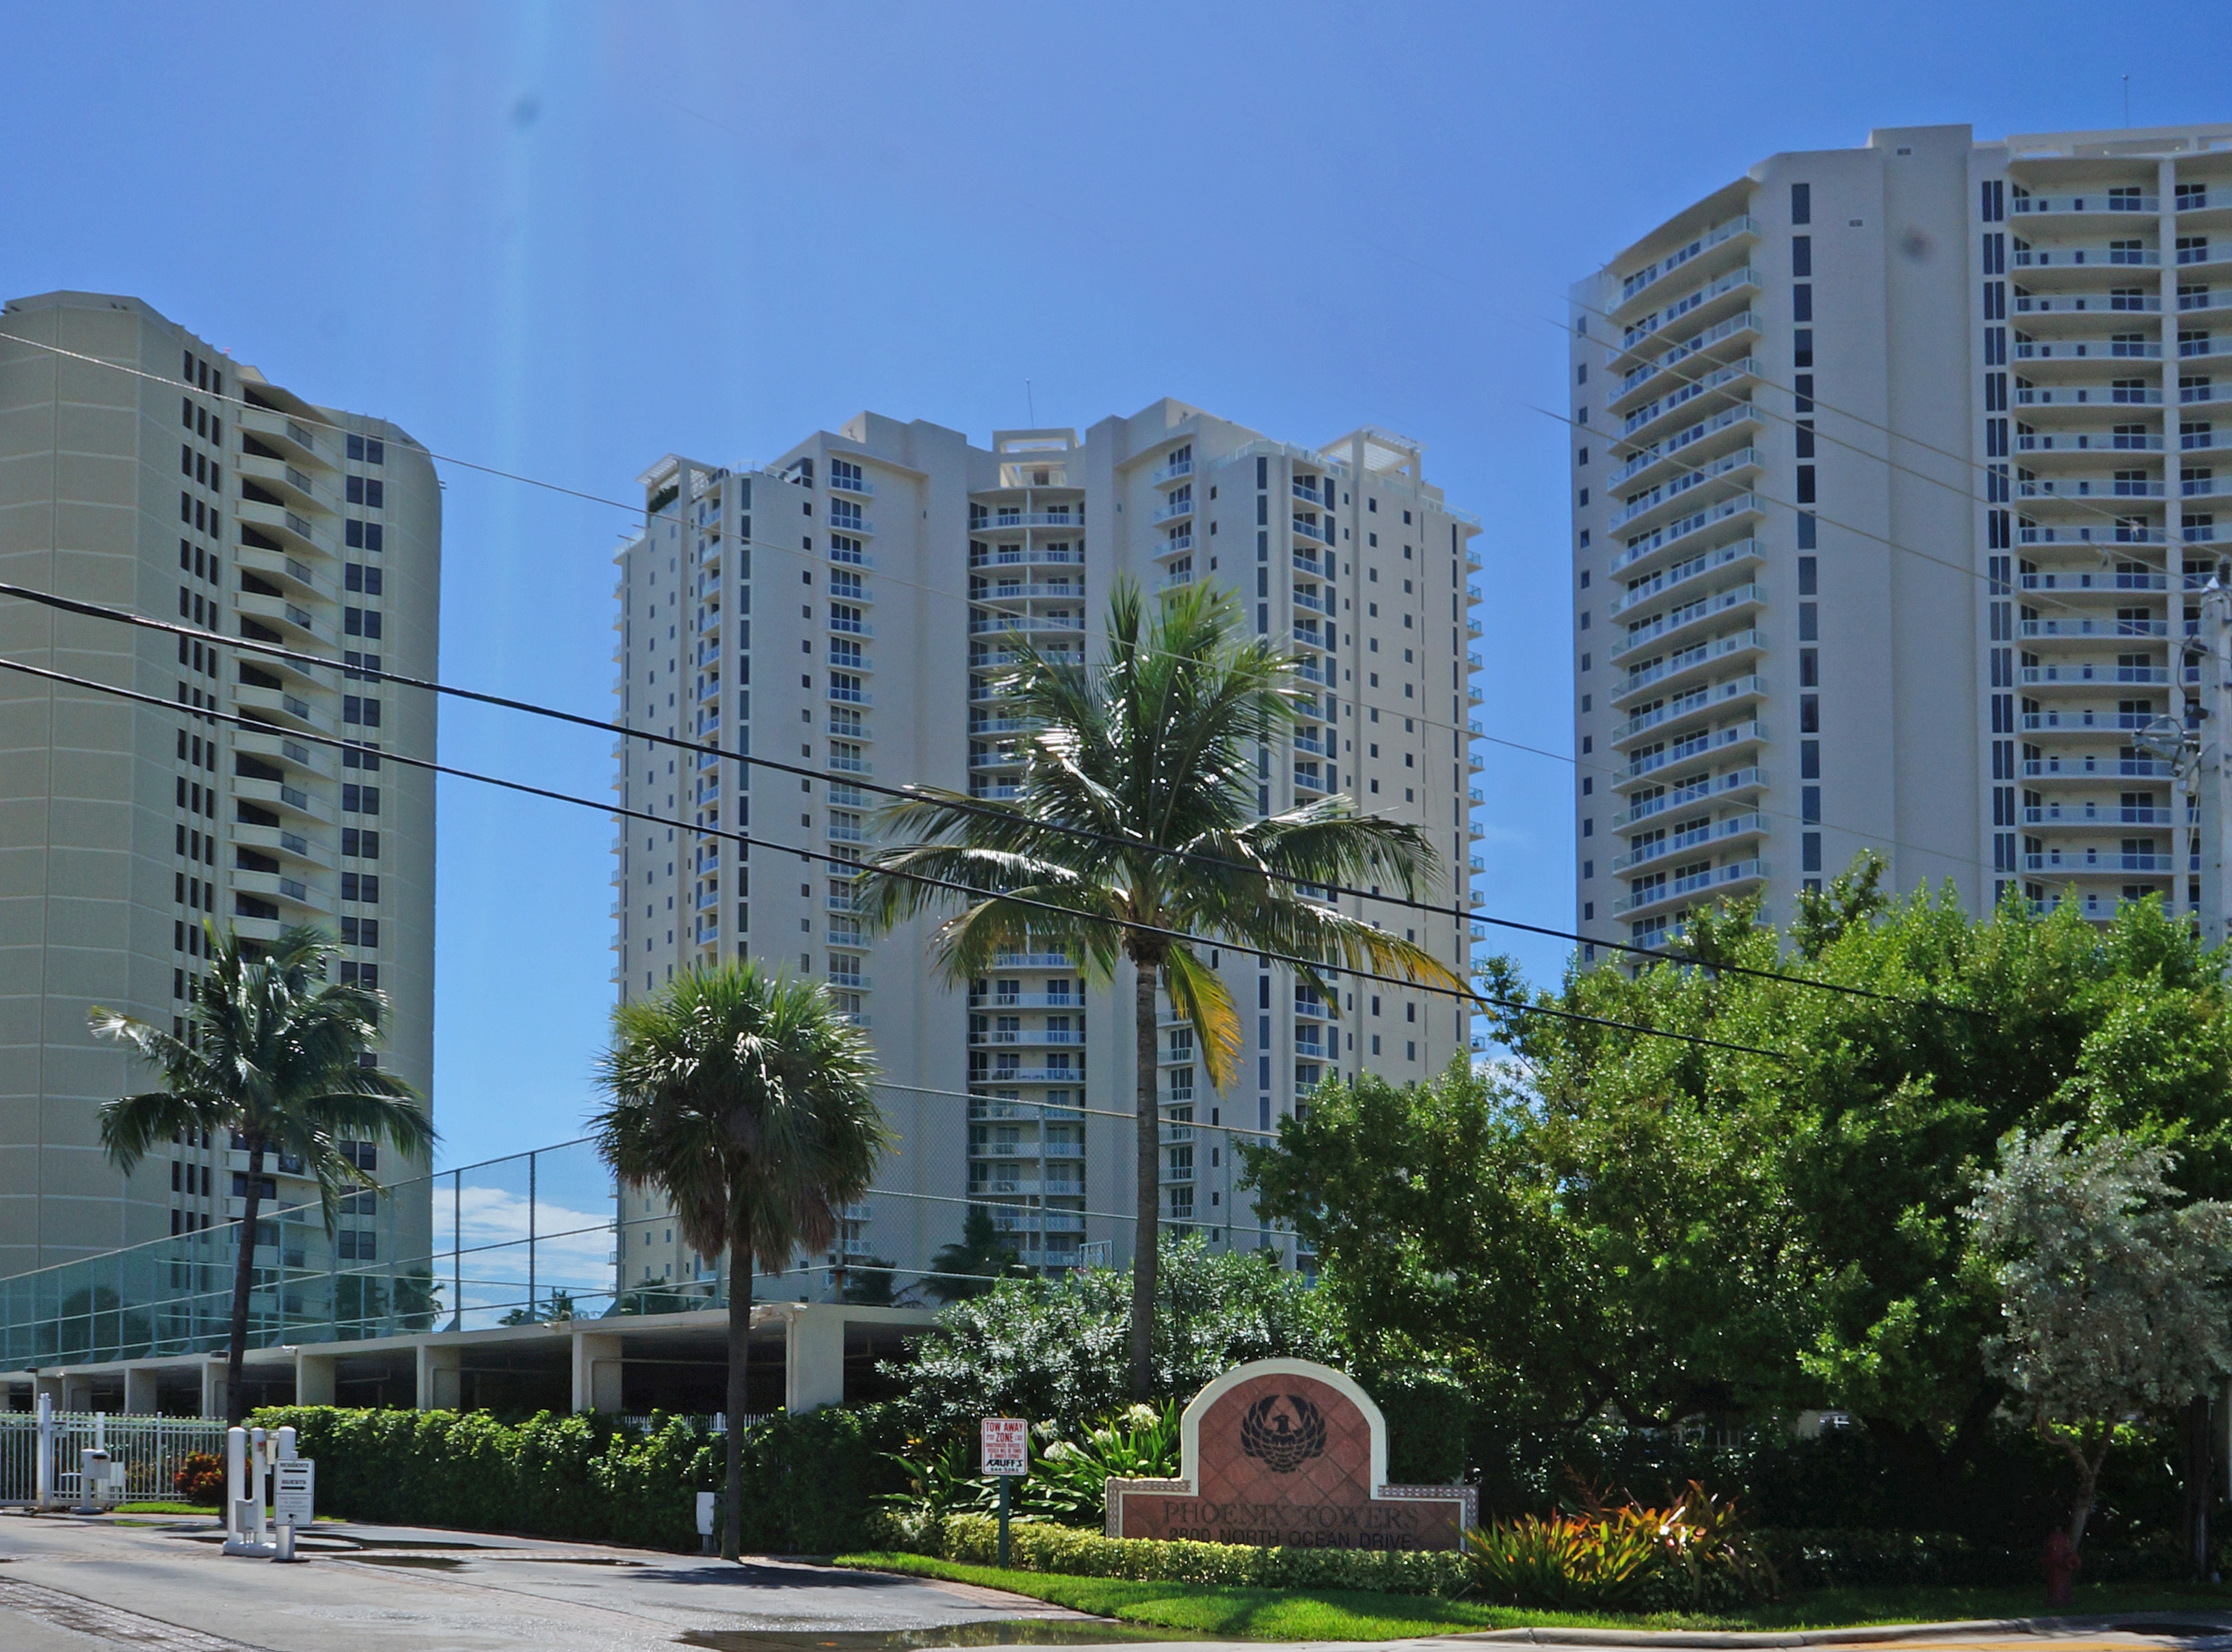 Phoenix Towers - Singer Island Luxury Oceanfront Condos in Florida